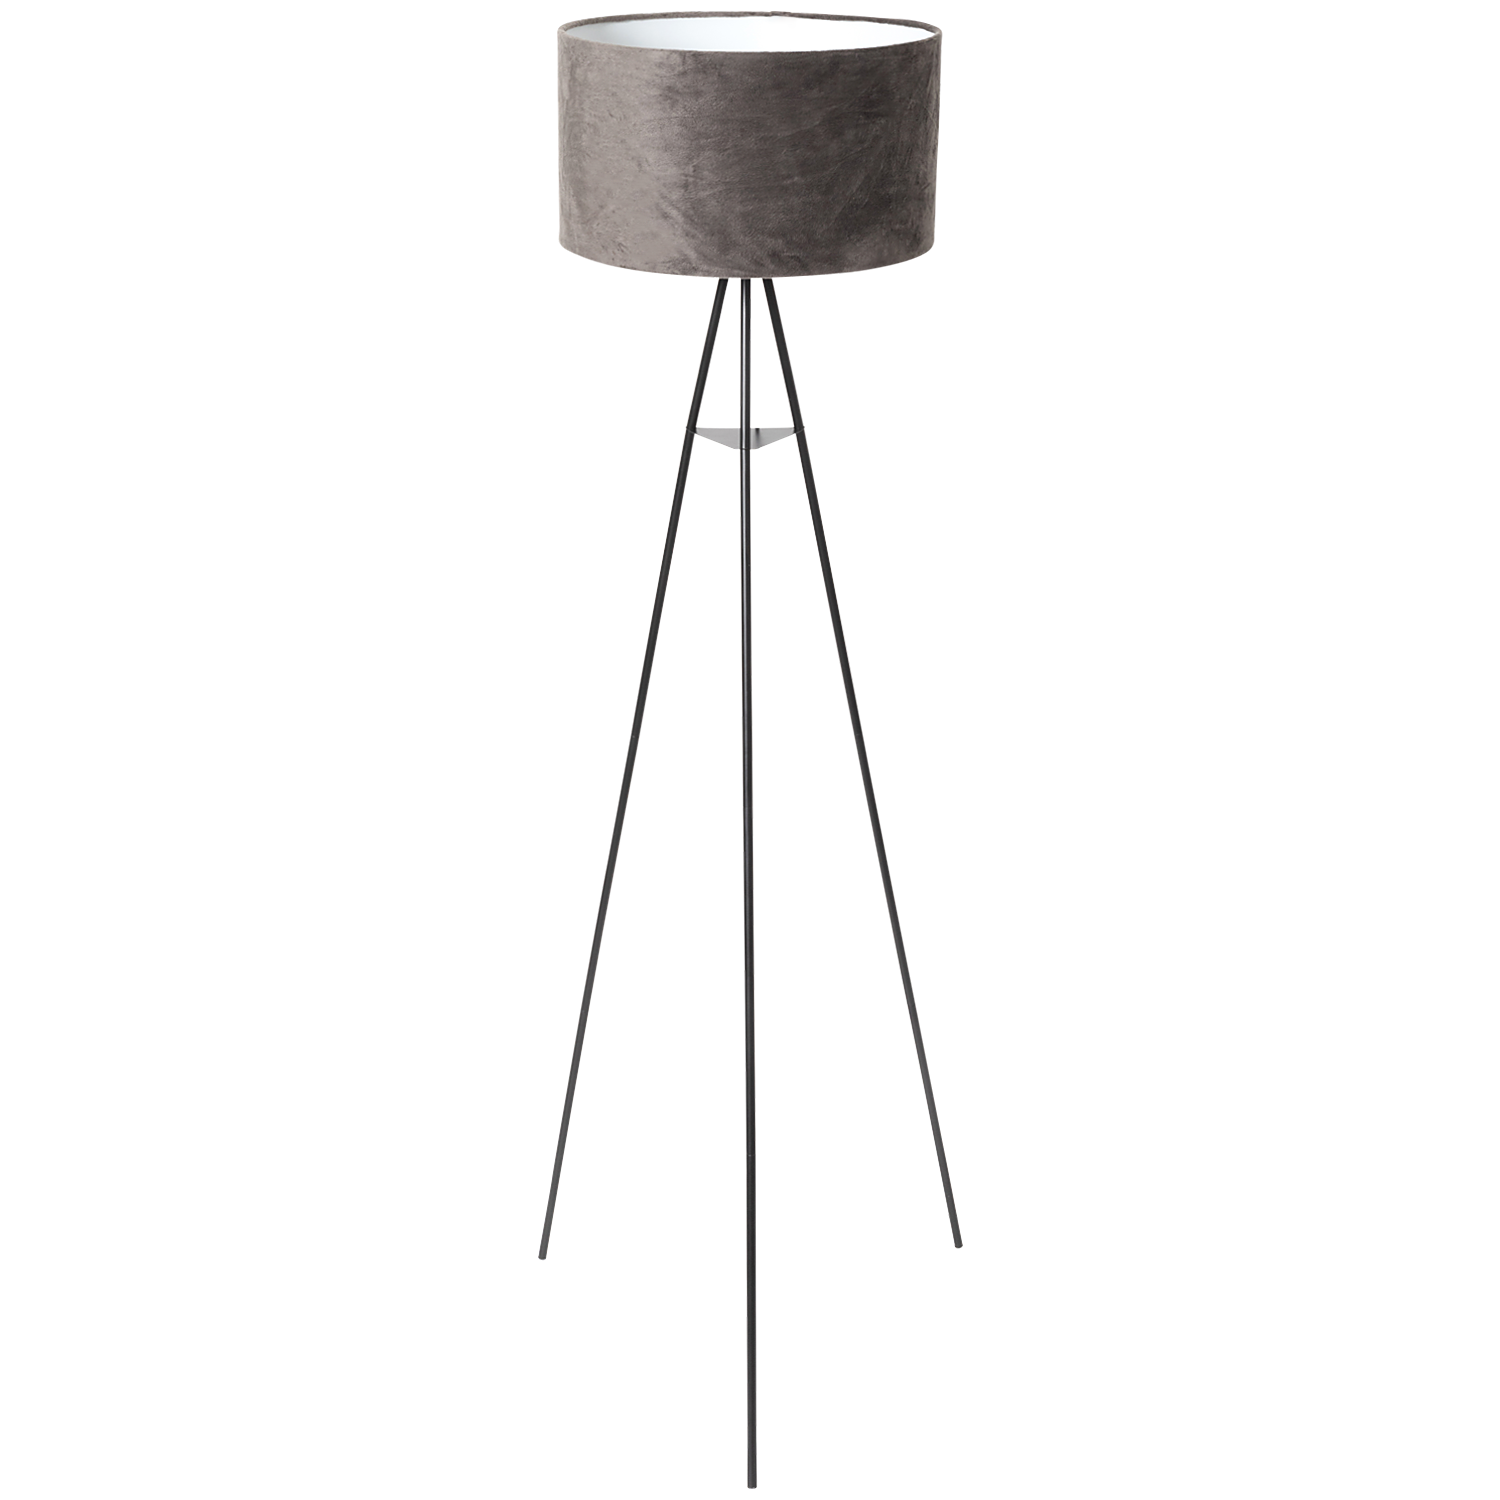 Dimbare Led Lamp Action.Staande Lamp Action Information And Ideas Herz Intakt